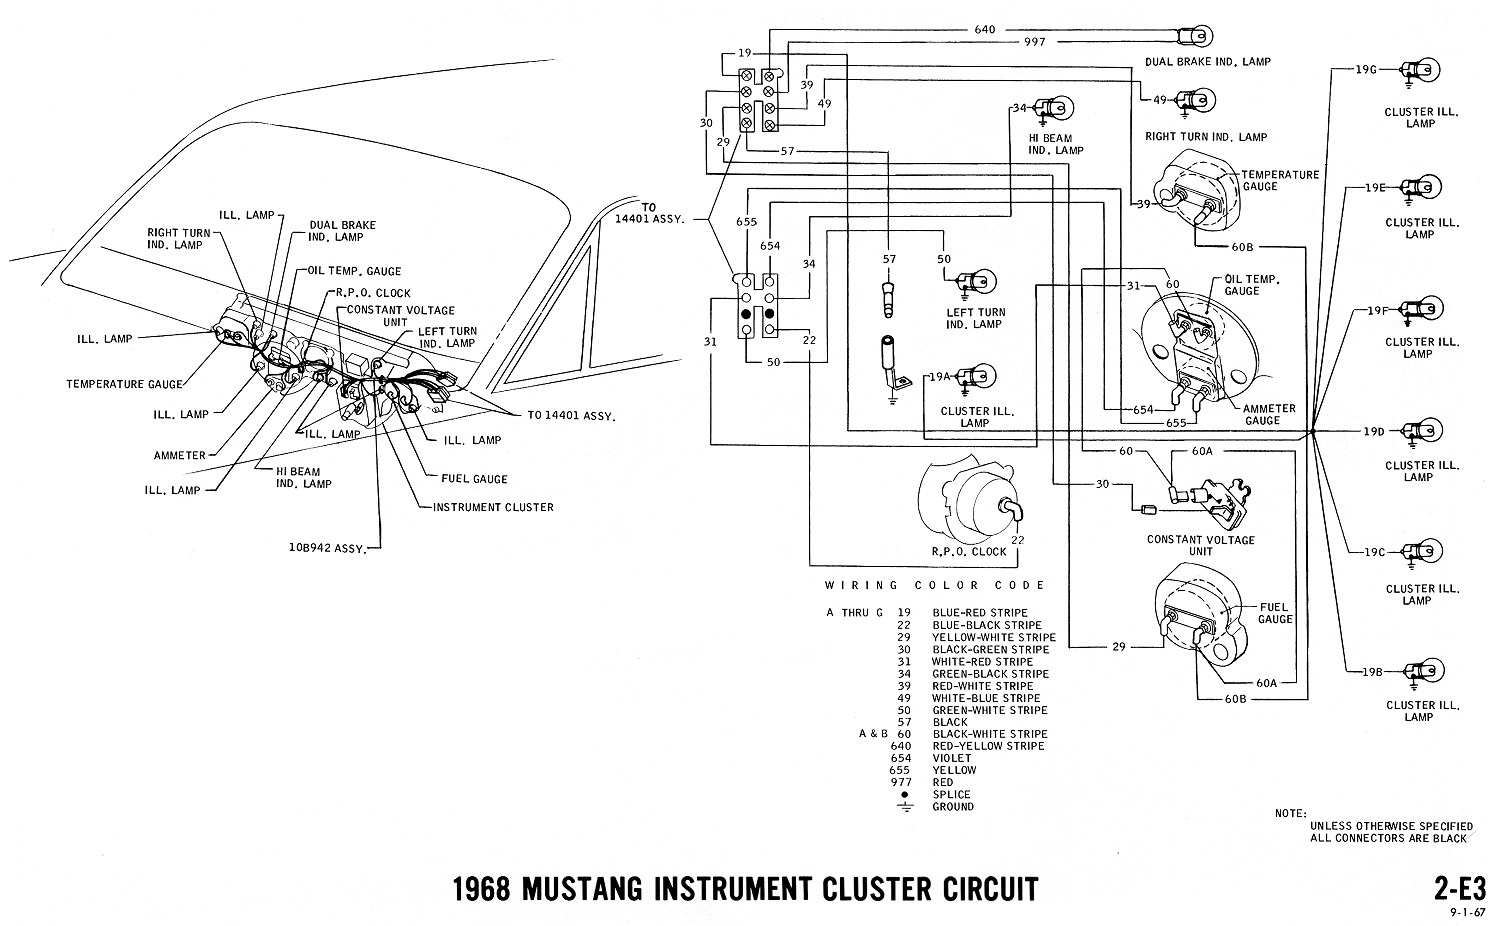 1968 Mustang Wiring Diagrams And Vacuum Schematics Average Joe Corvette Wiper Diagram Instruments